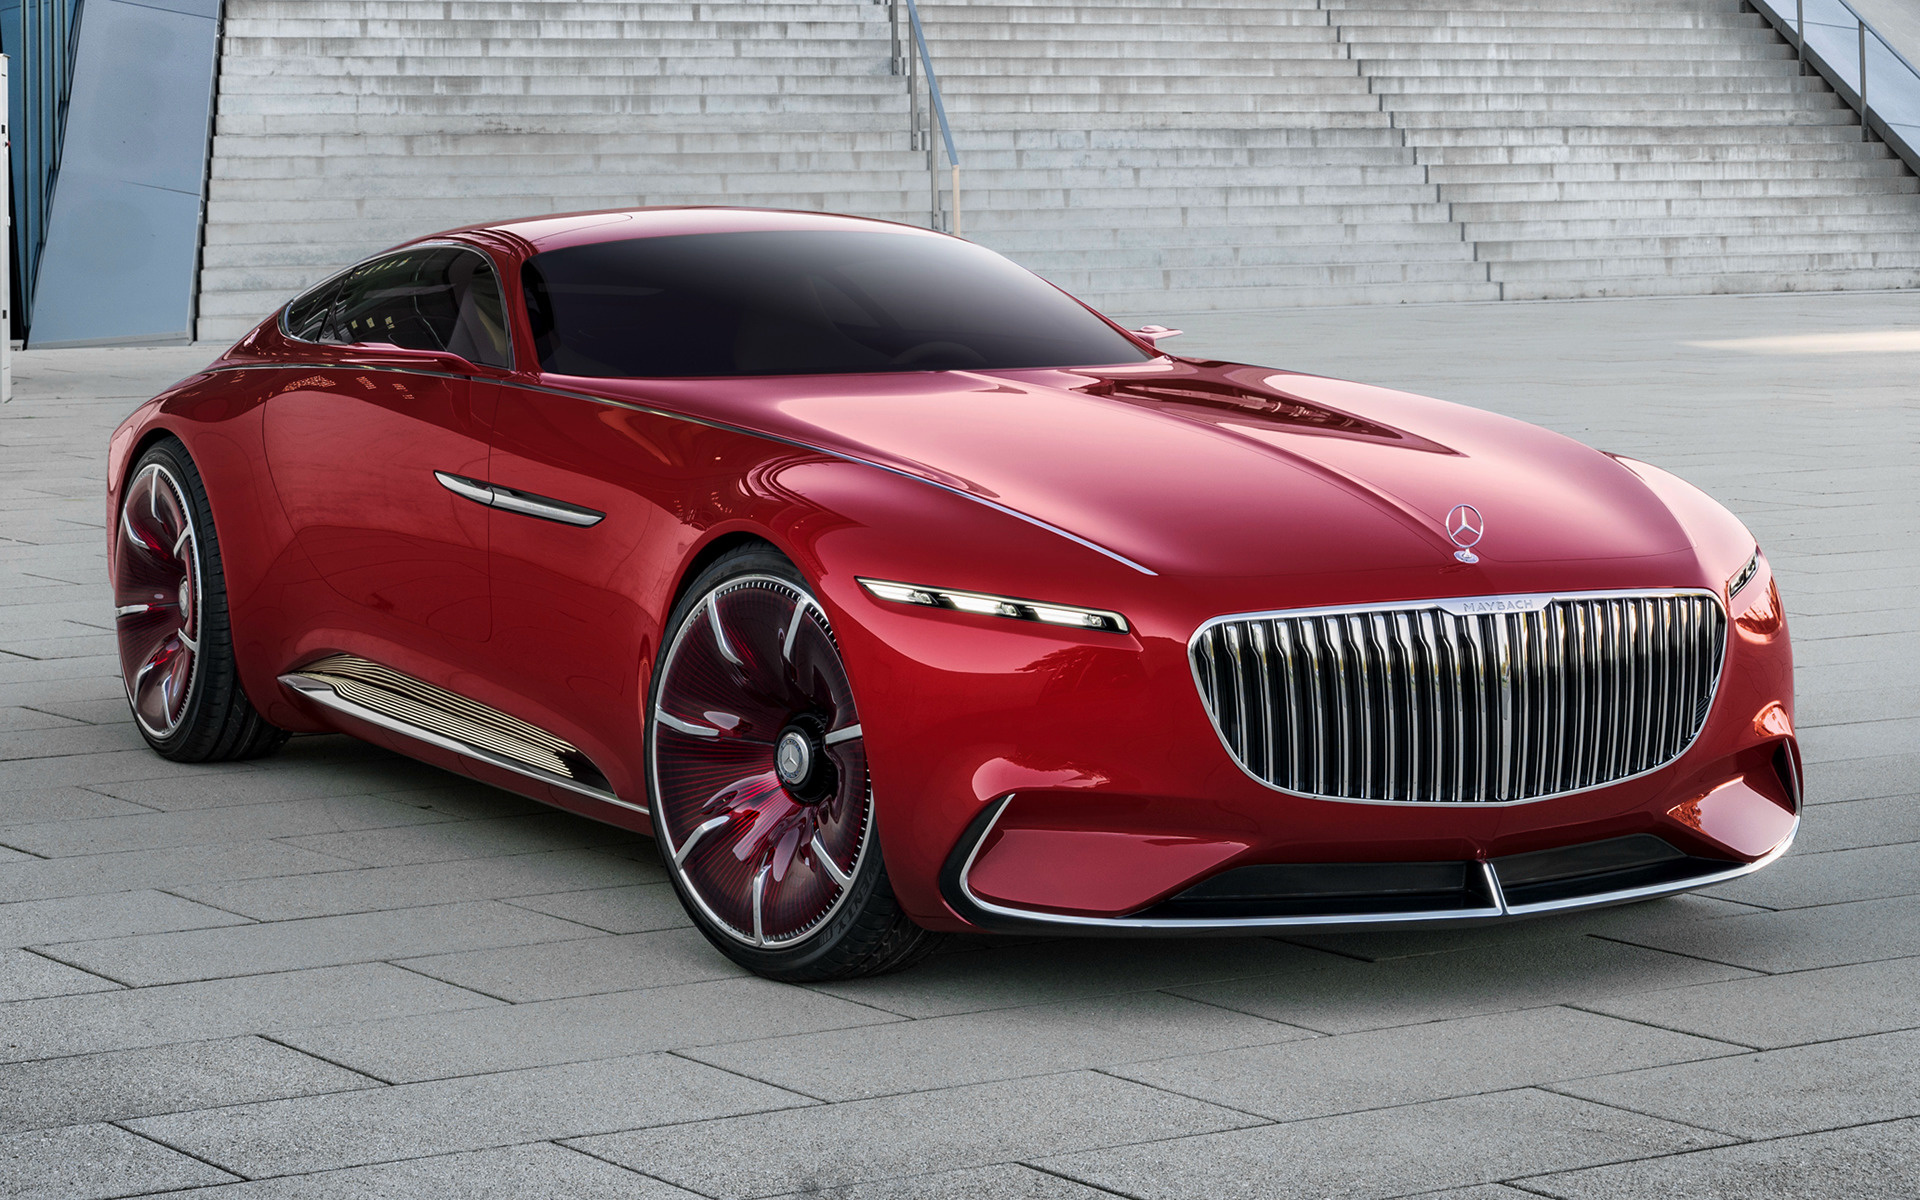 Mobil Hd Wallpaper 2016 Vision Mercedes Maybach 6 Wallpapers And Hd Images